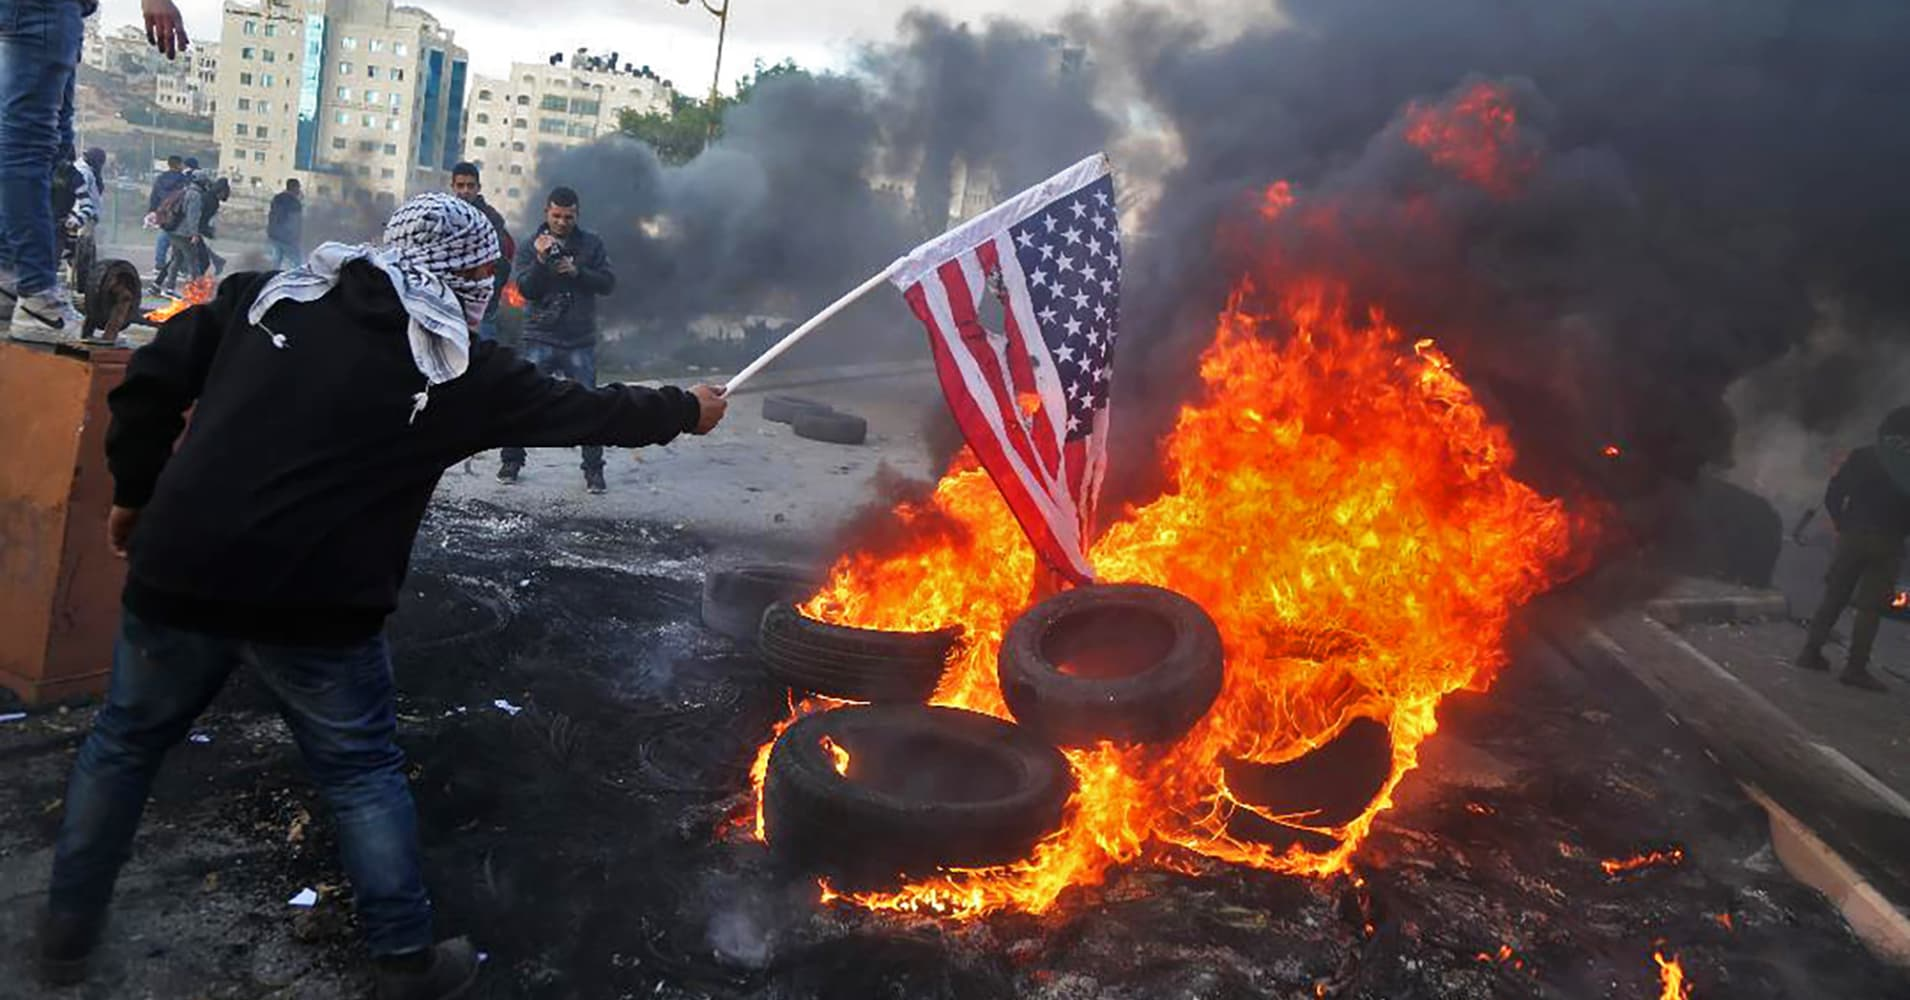 A Palestinian protester sets alight an America flag during clashes with Israeli troops at a protest against US President Donald Trump's decision to recognize Jerusalem as the capital of Israel, near the Jewish settlement of Beit El, near the West Bank city of Ramallah on December 7, 2017.